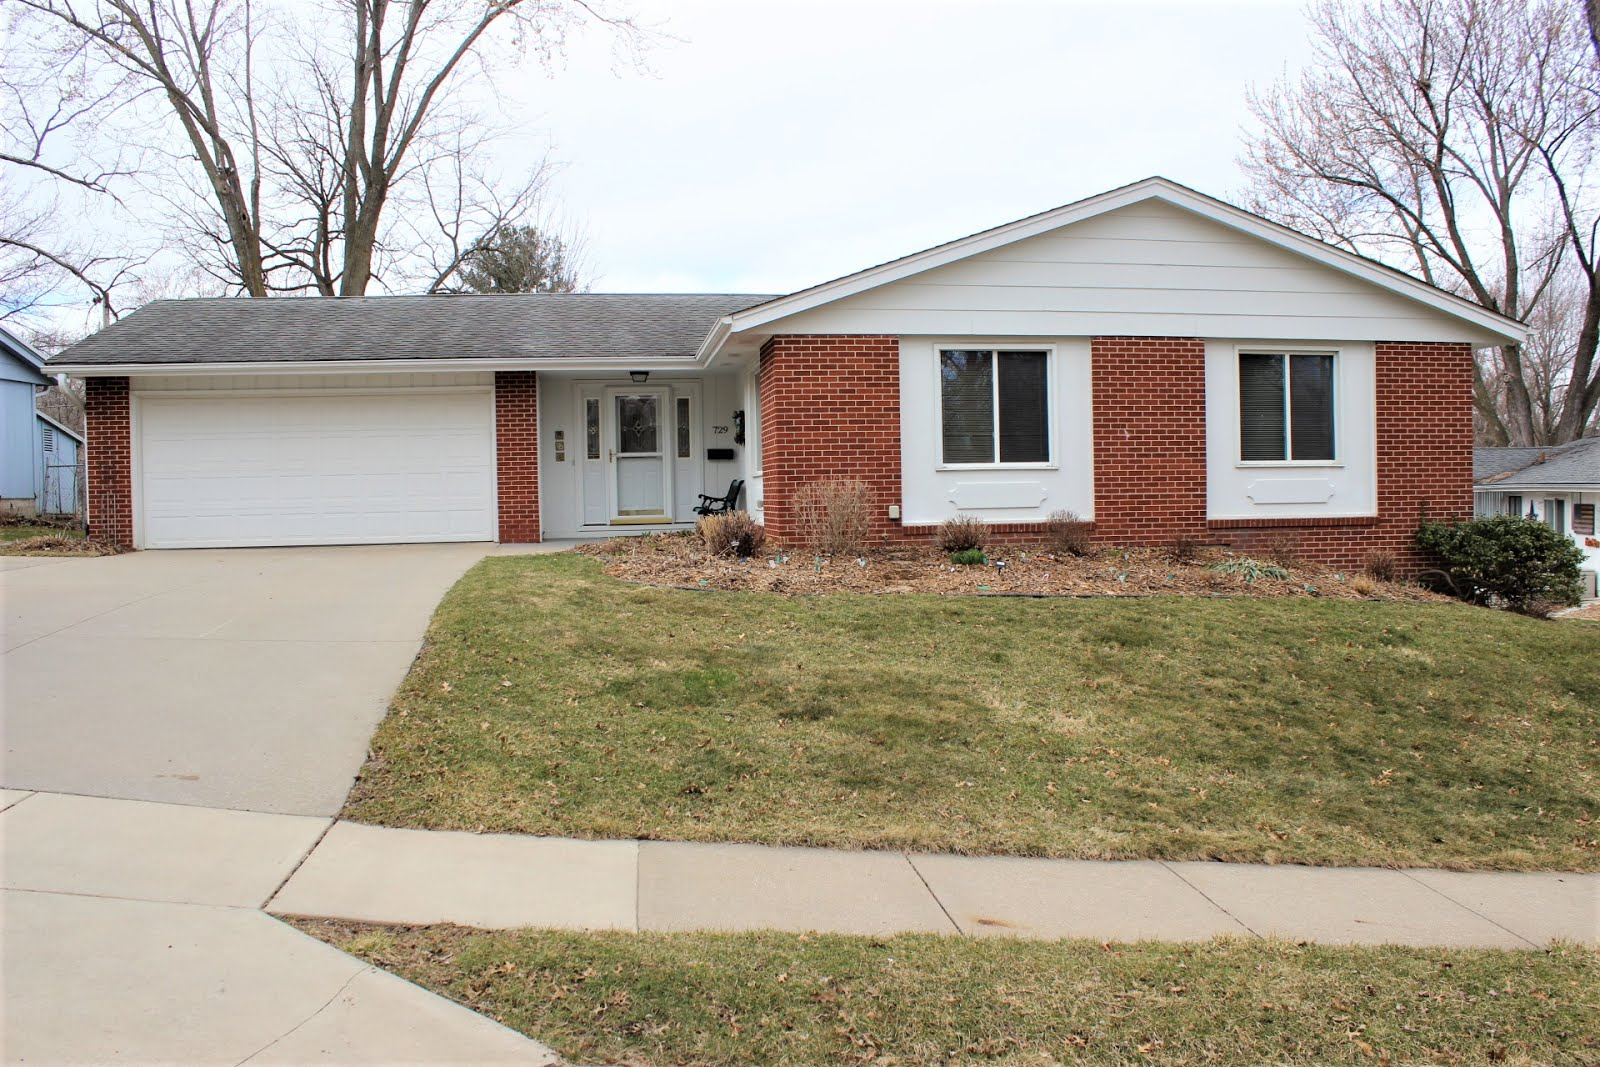 729 Alpine Dr. Iowa City, IA 52245 $268,000 PENDING